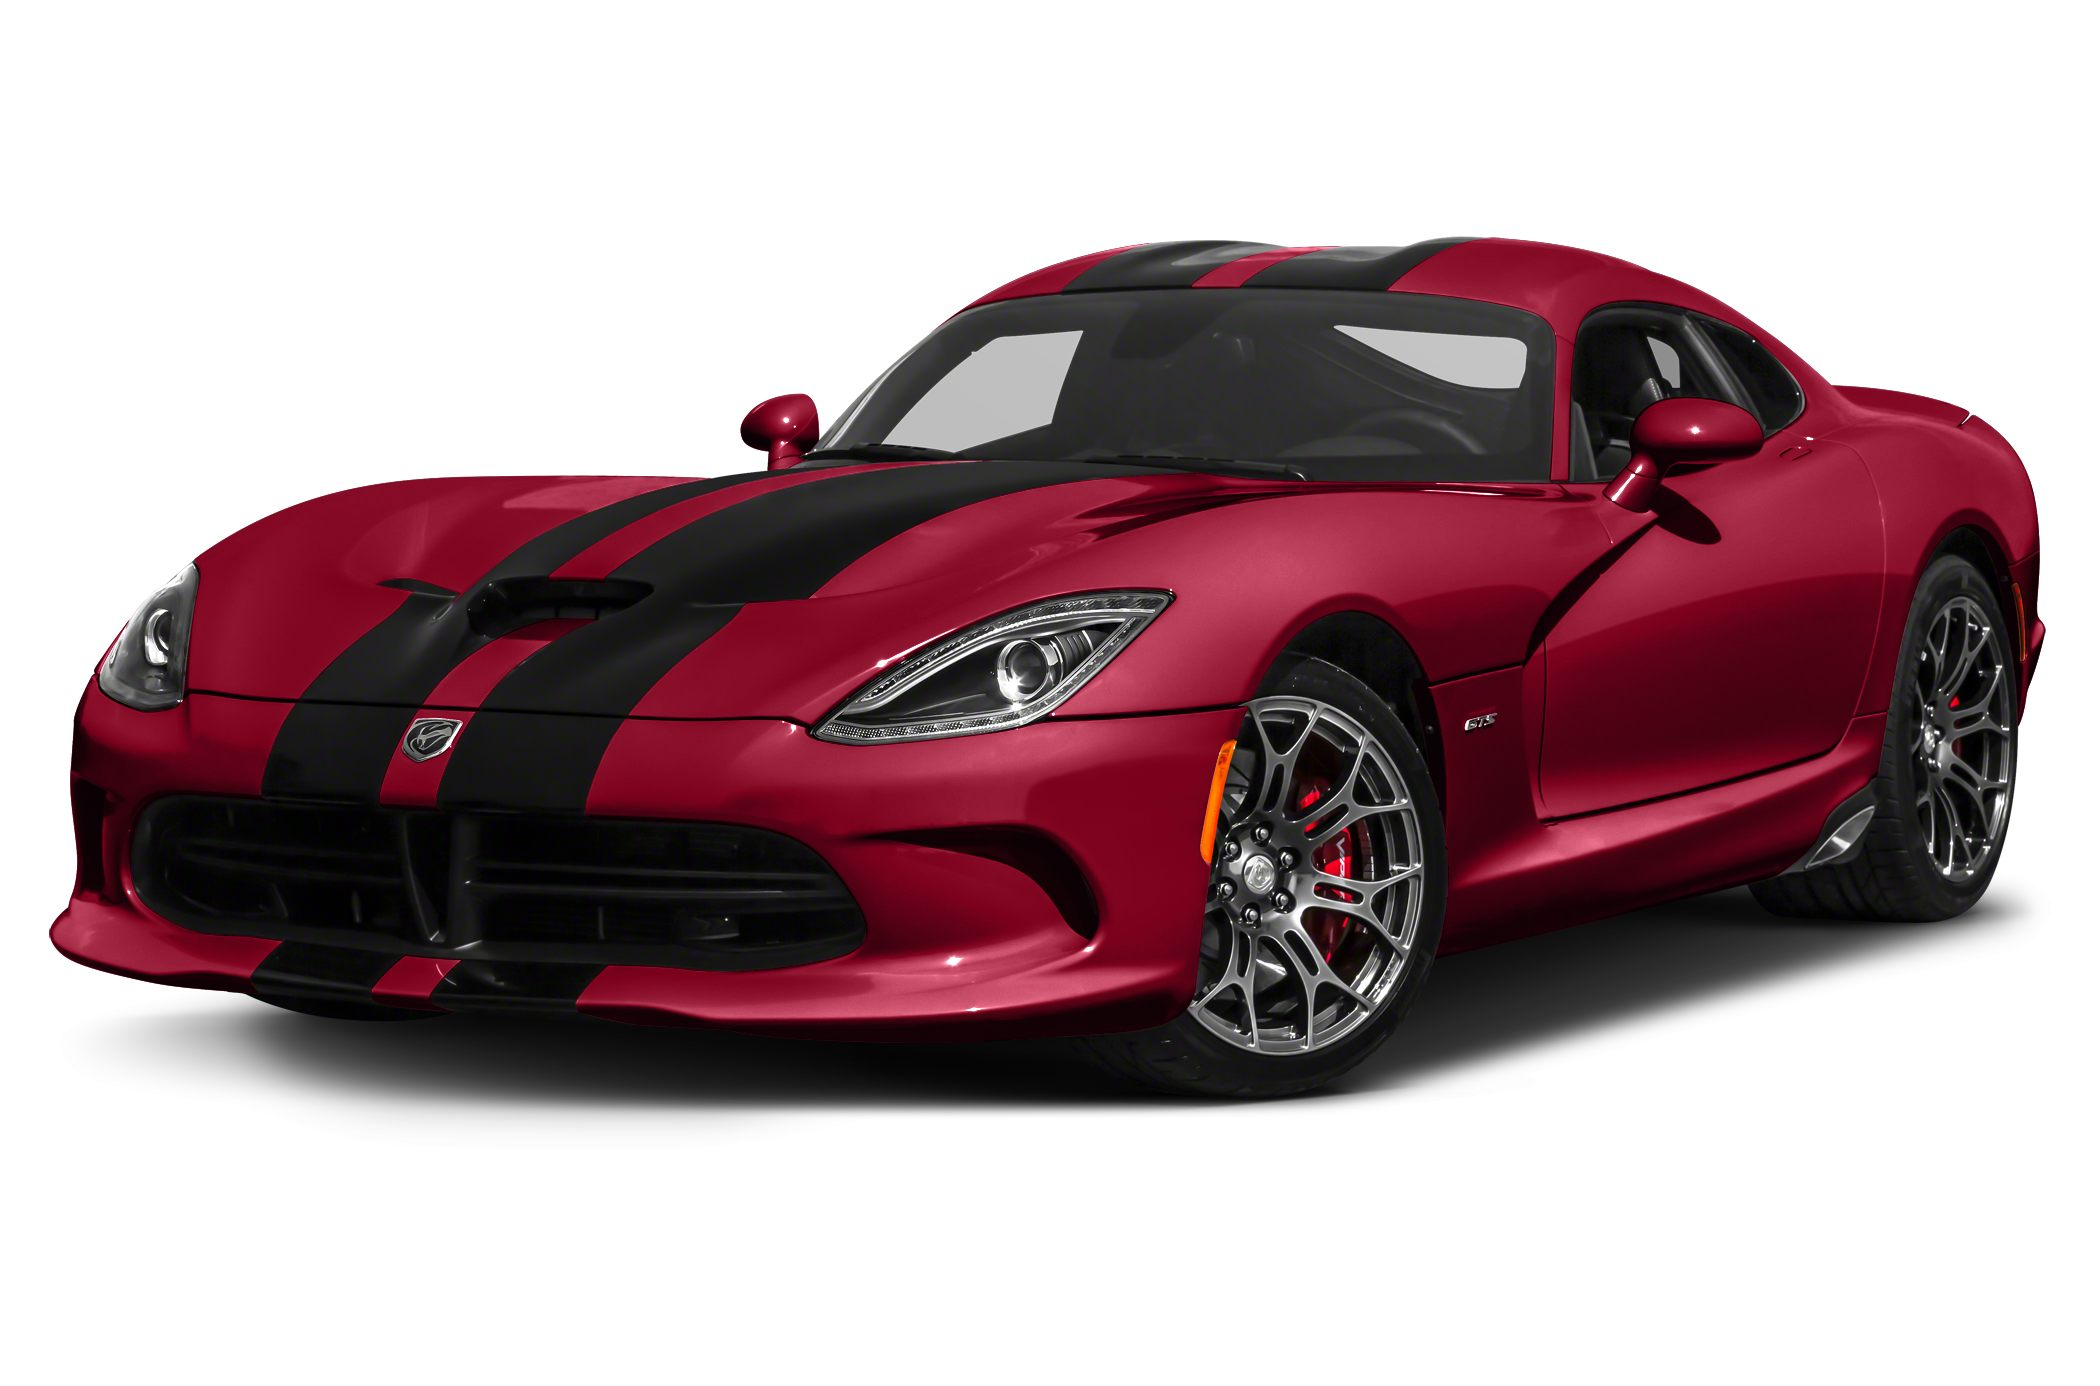 Dodge Viper saved from crusher by students, but will it last?